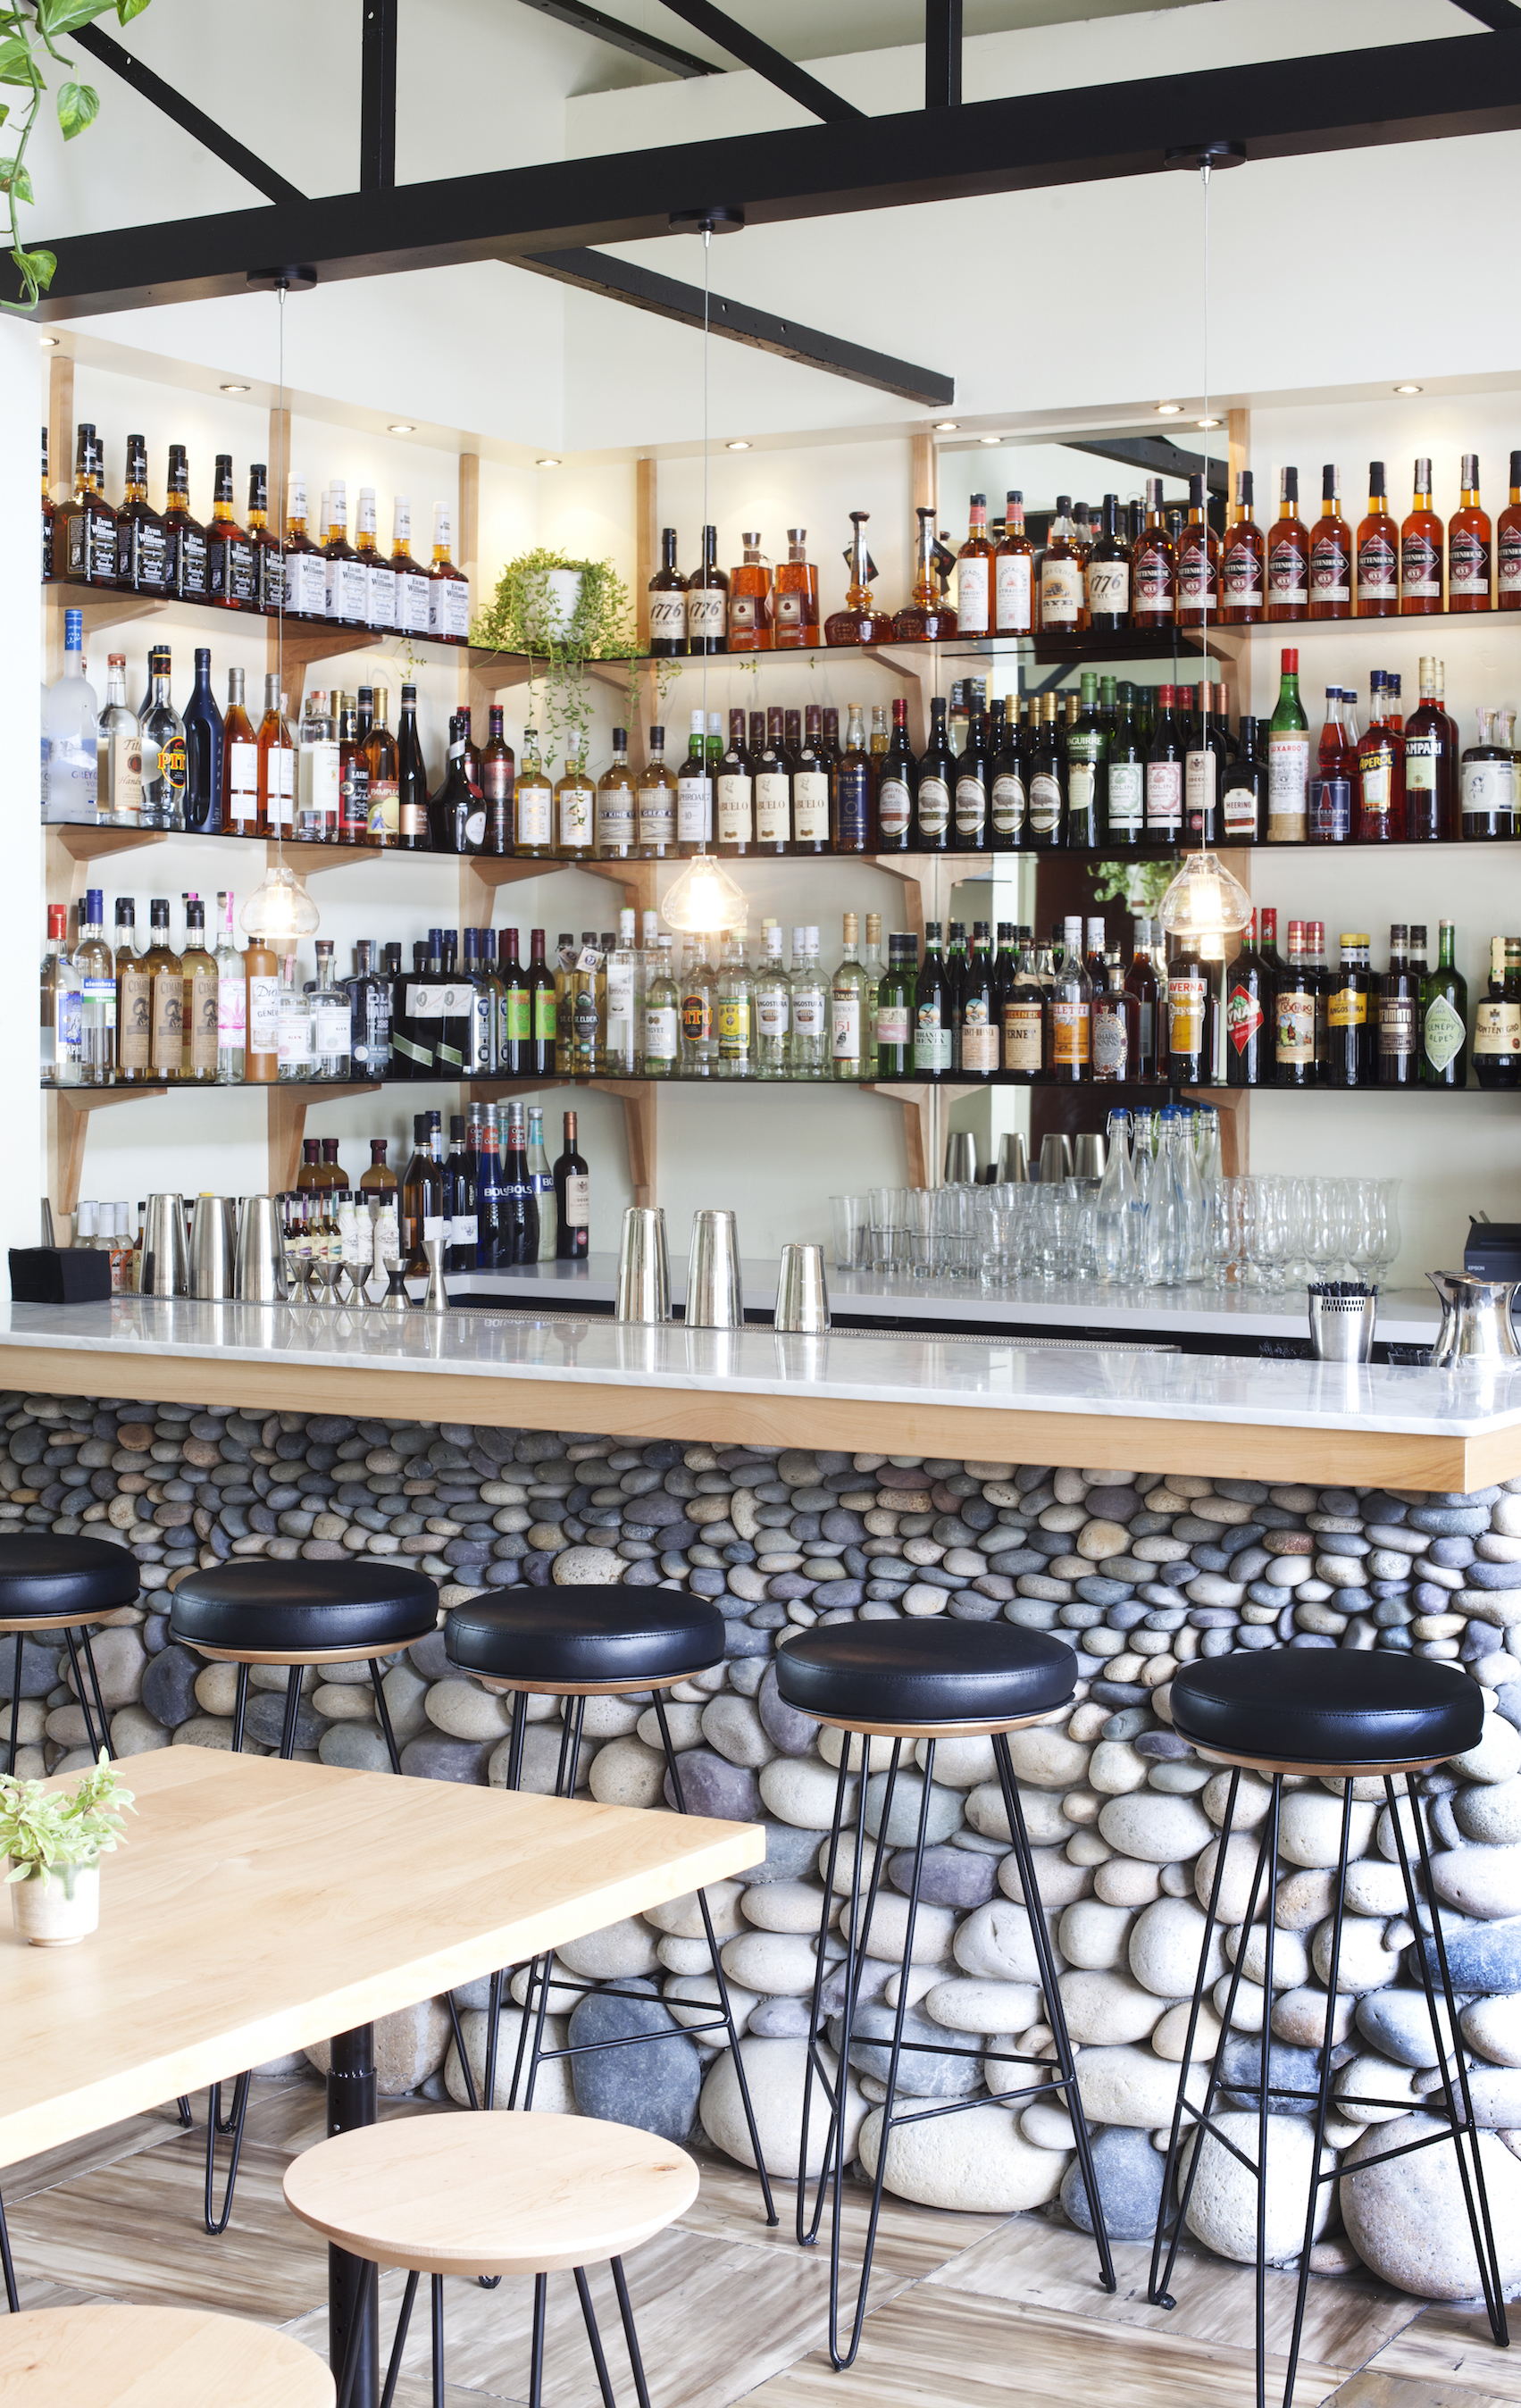 THE STACKED STONE BAR   It looks awesome